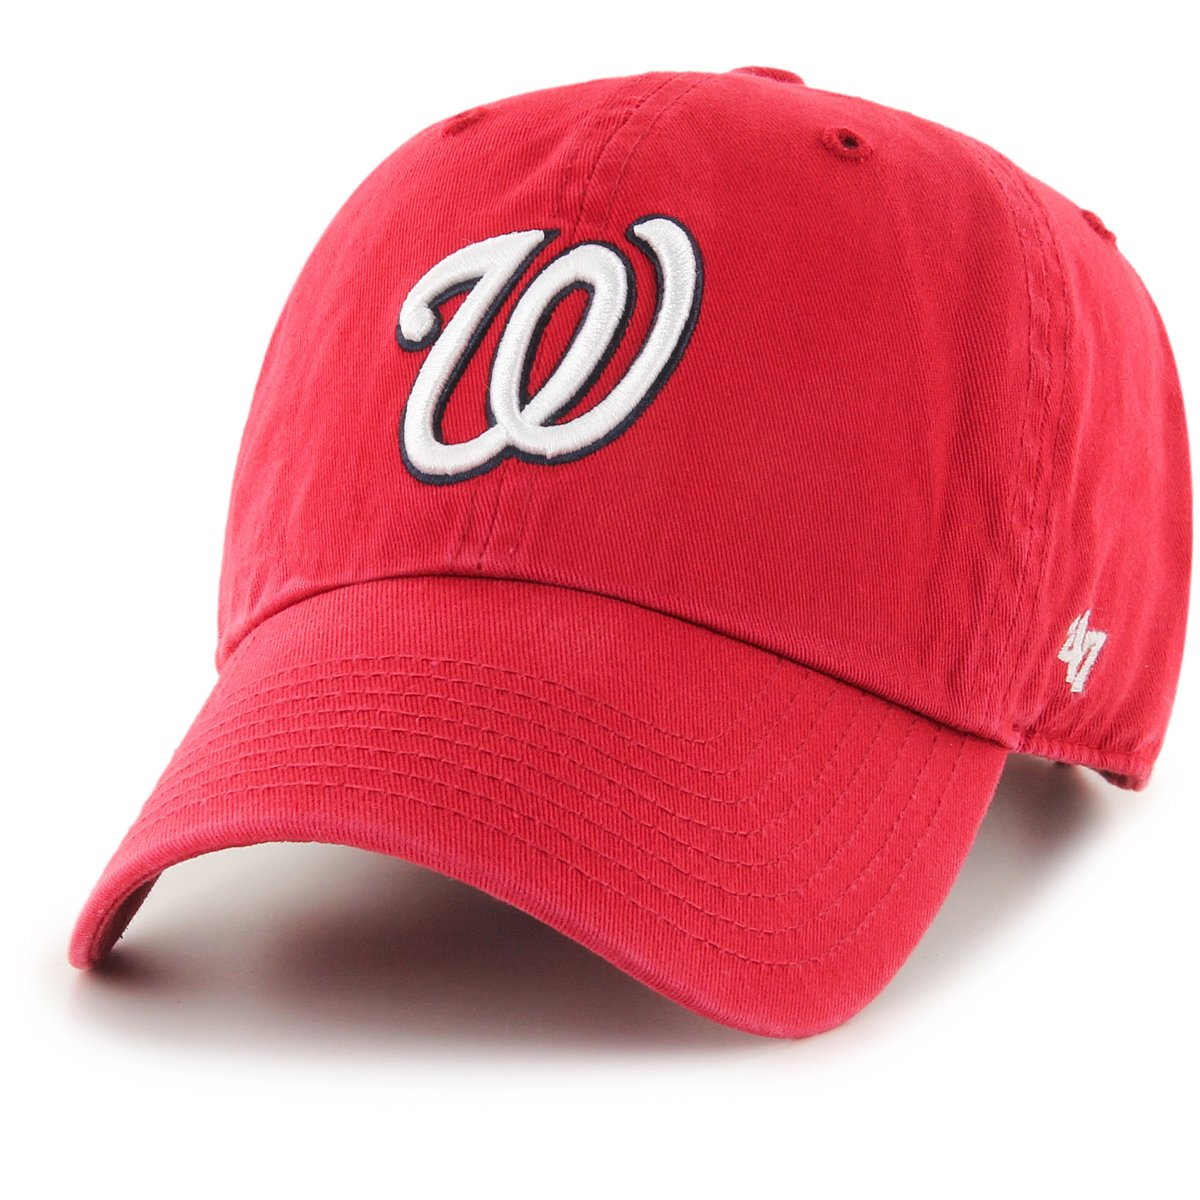 d0dcc98c7ff 47 Brand Relaxed Fit Cap - MLB Washington Nationals red 53838503144 ...